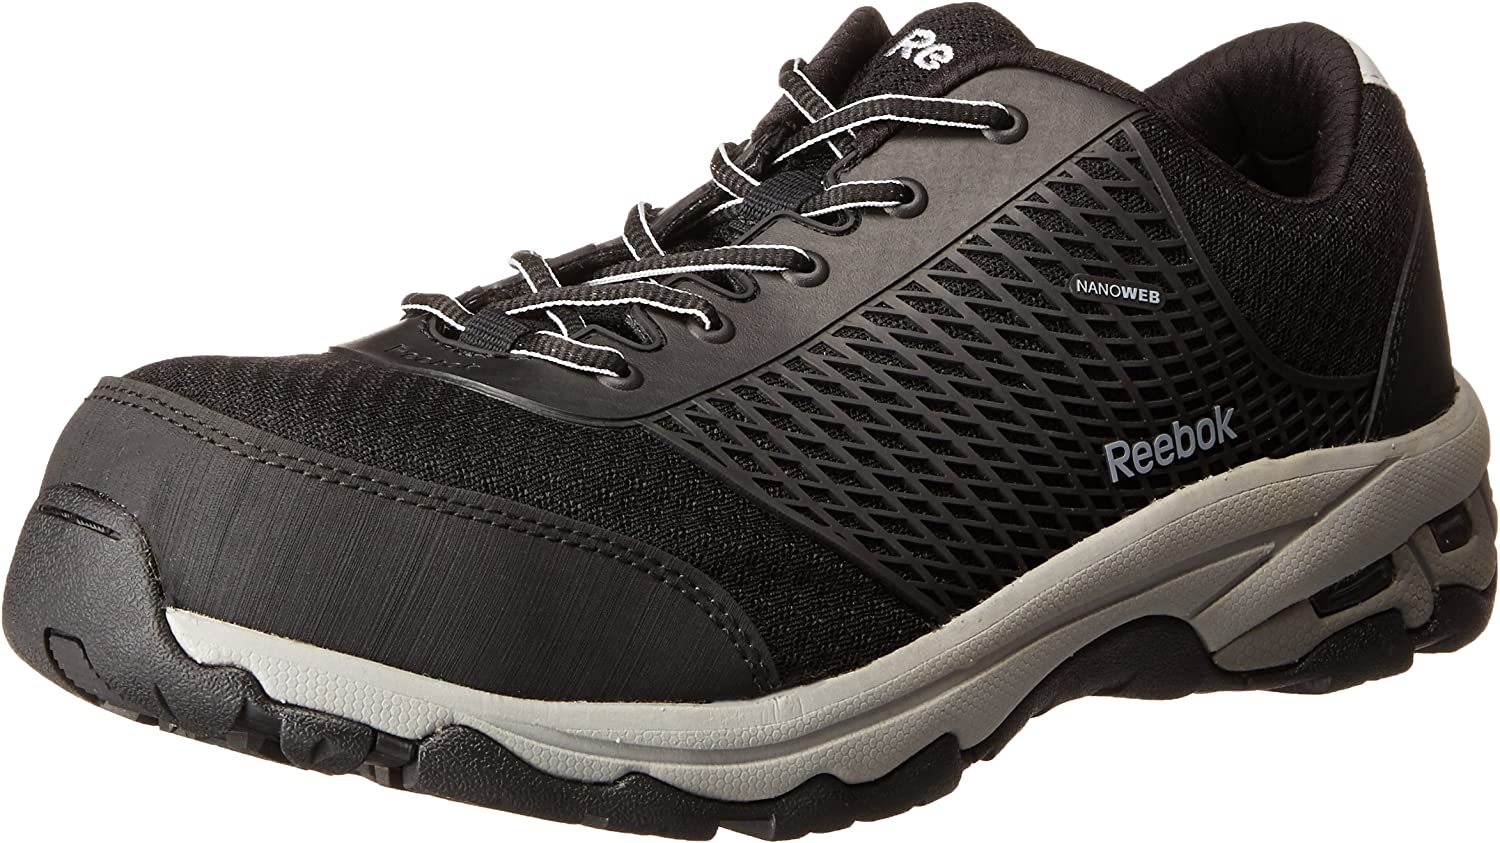 Reebok Work Men's Heckler RB4625 ESD Athletic Safety shoes